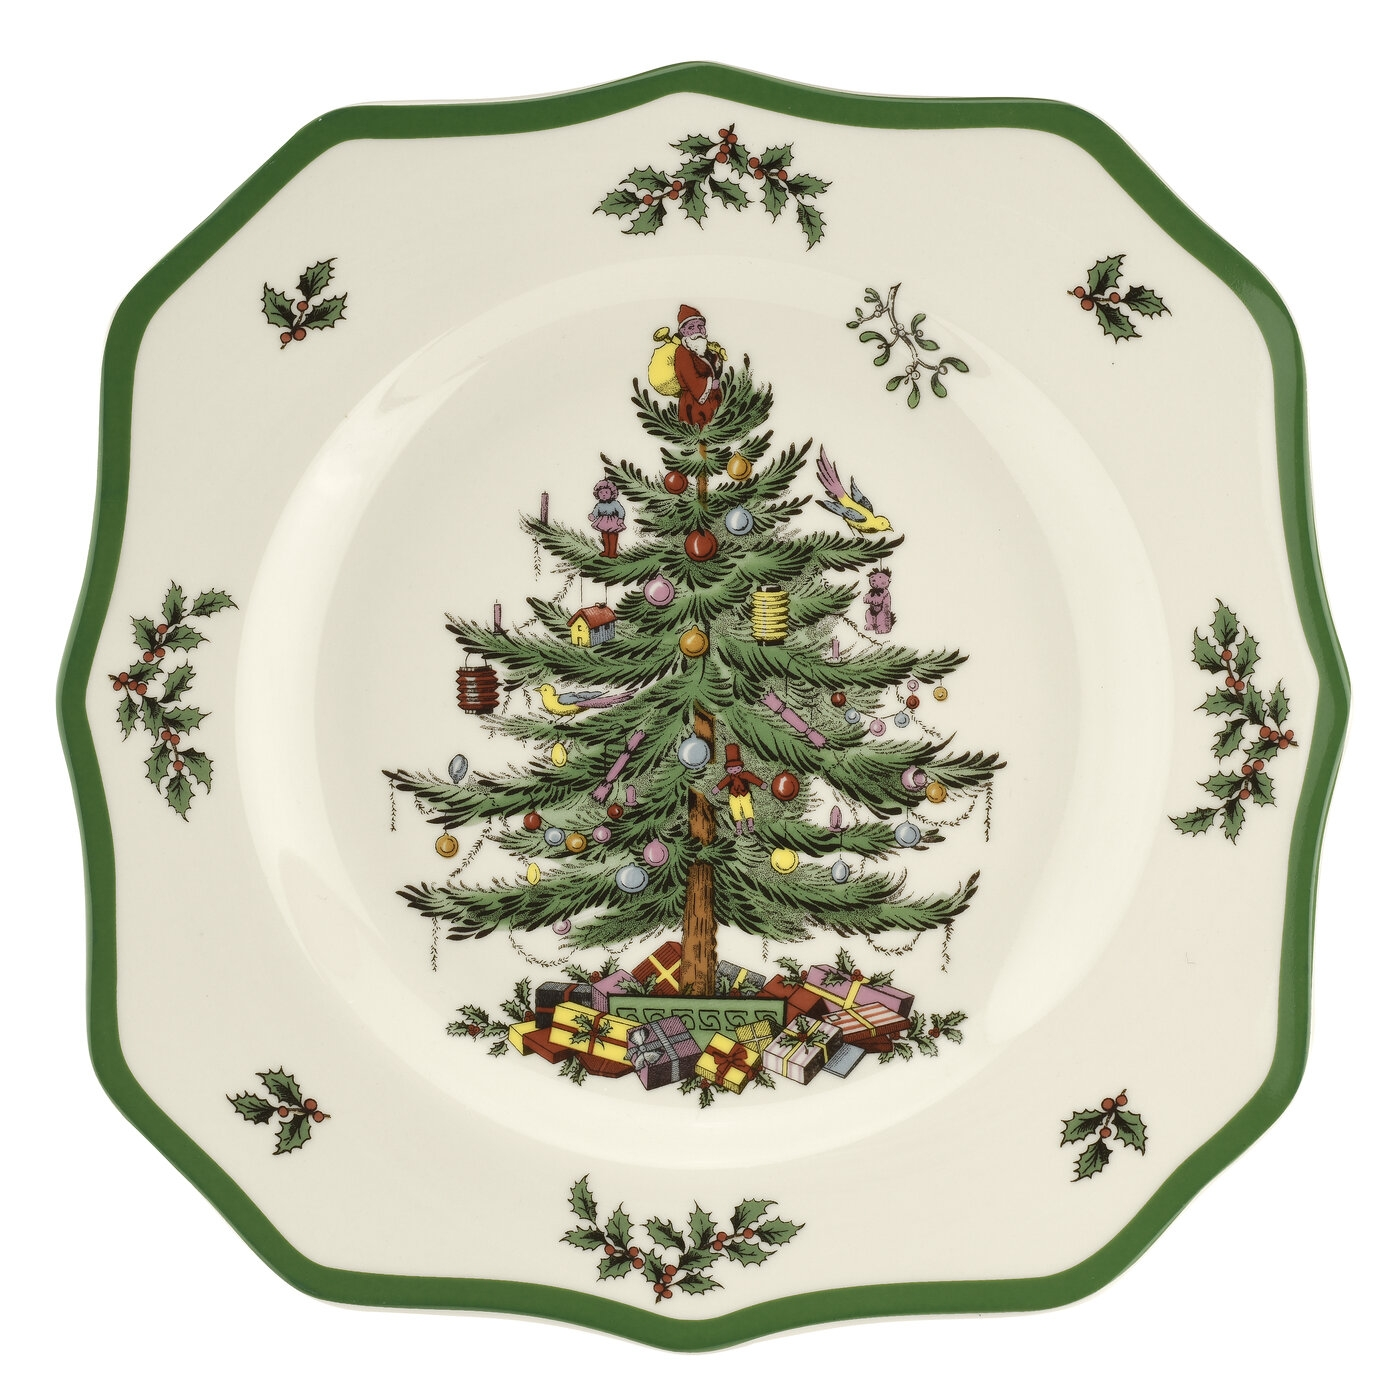 Spode Christmas Tree 2019 Scalloped Dinner Plate 10.5 Inch image number 0